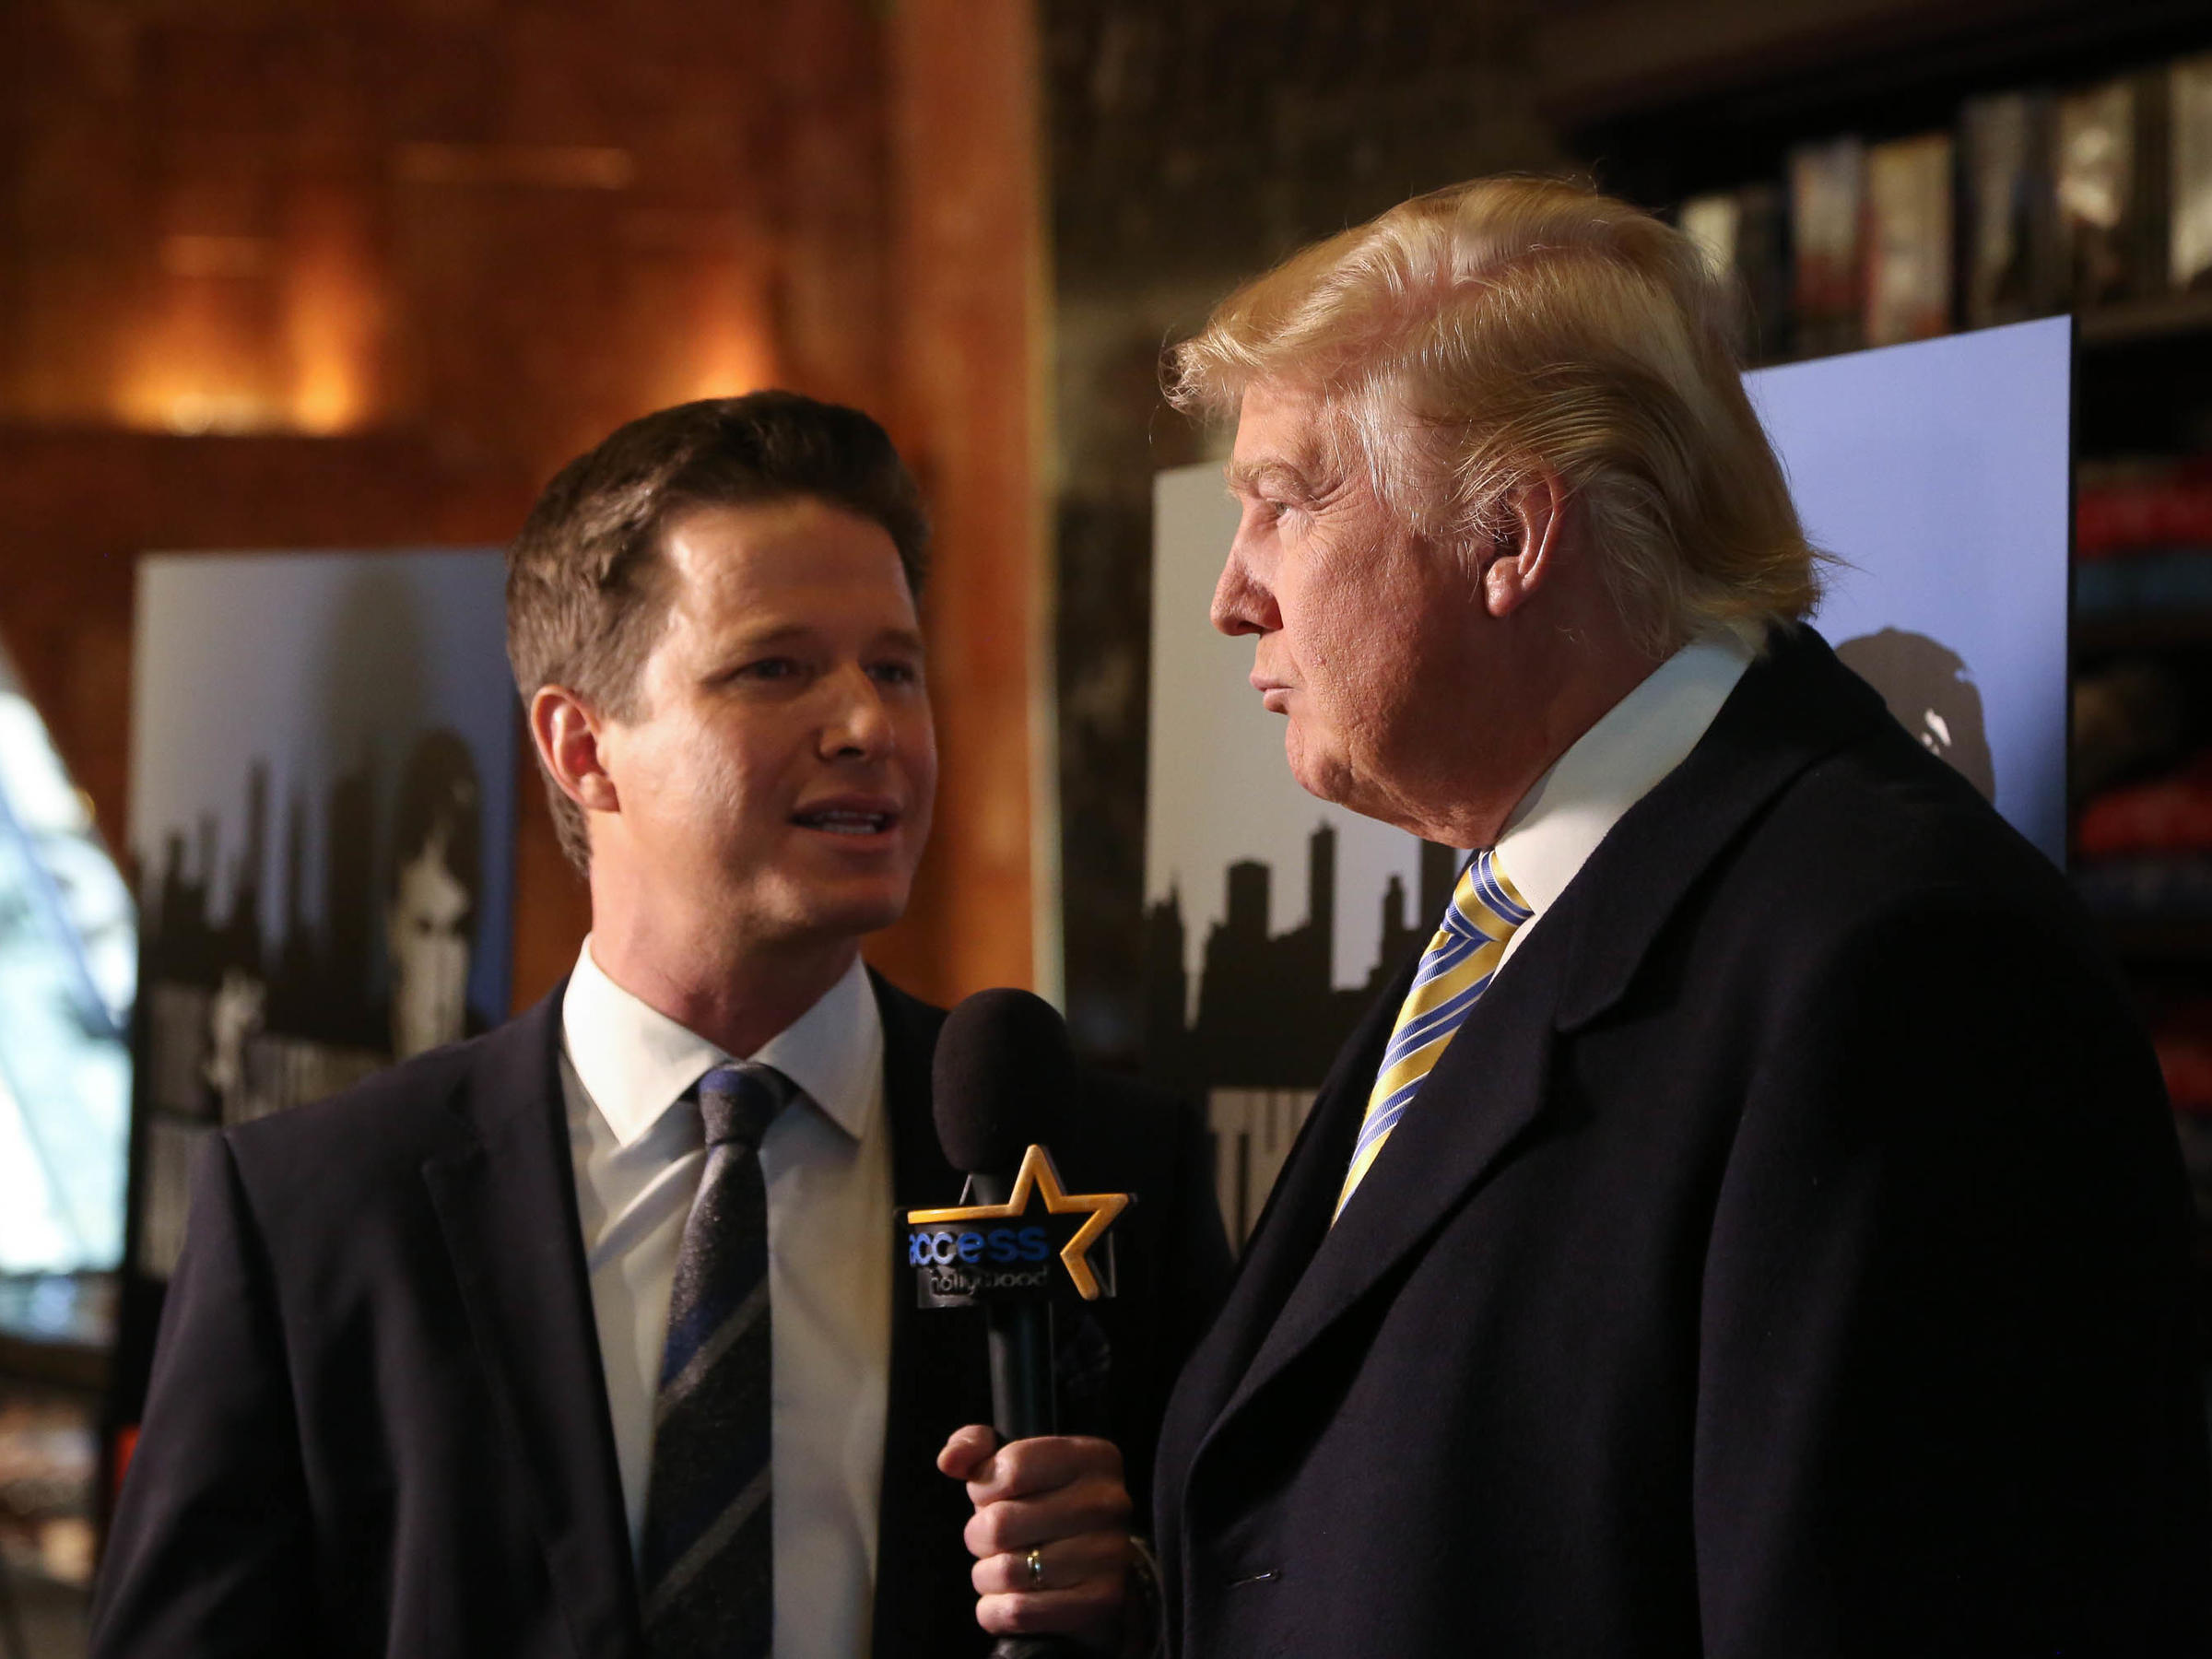 Billy Bush confirms Trump Access Hollywood tape is real